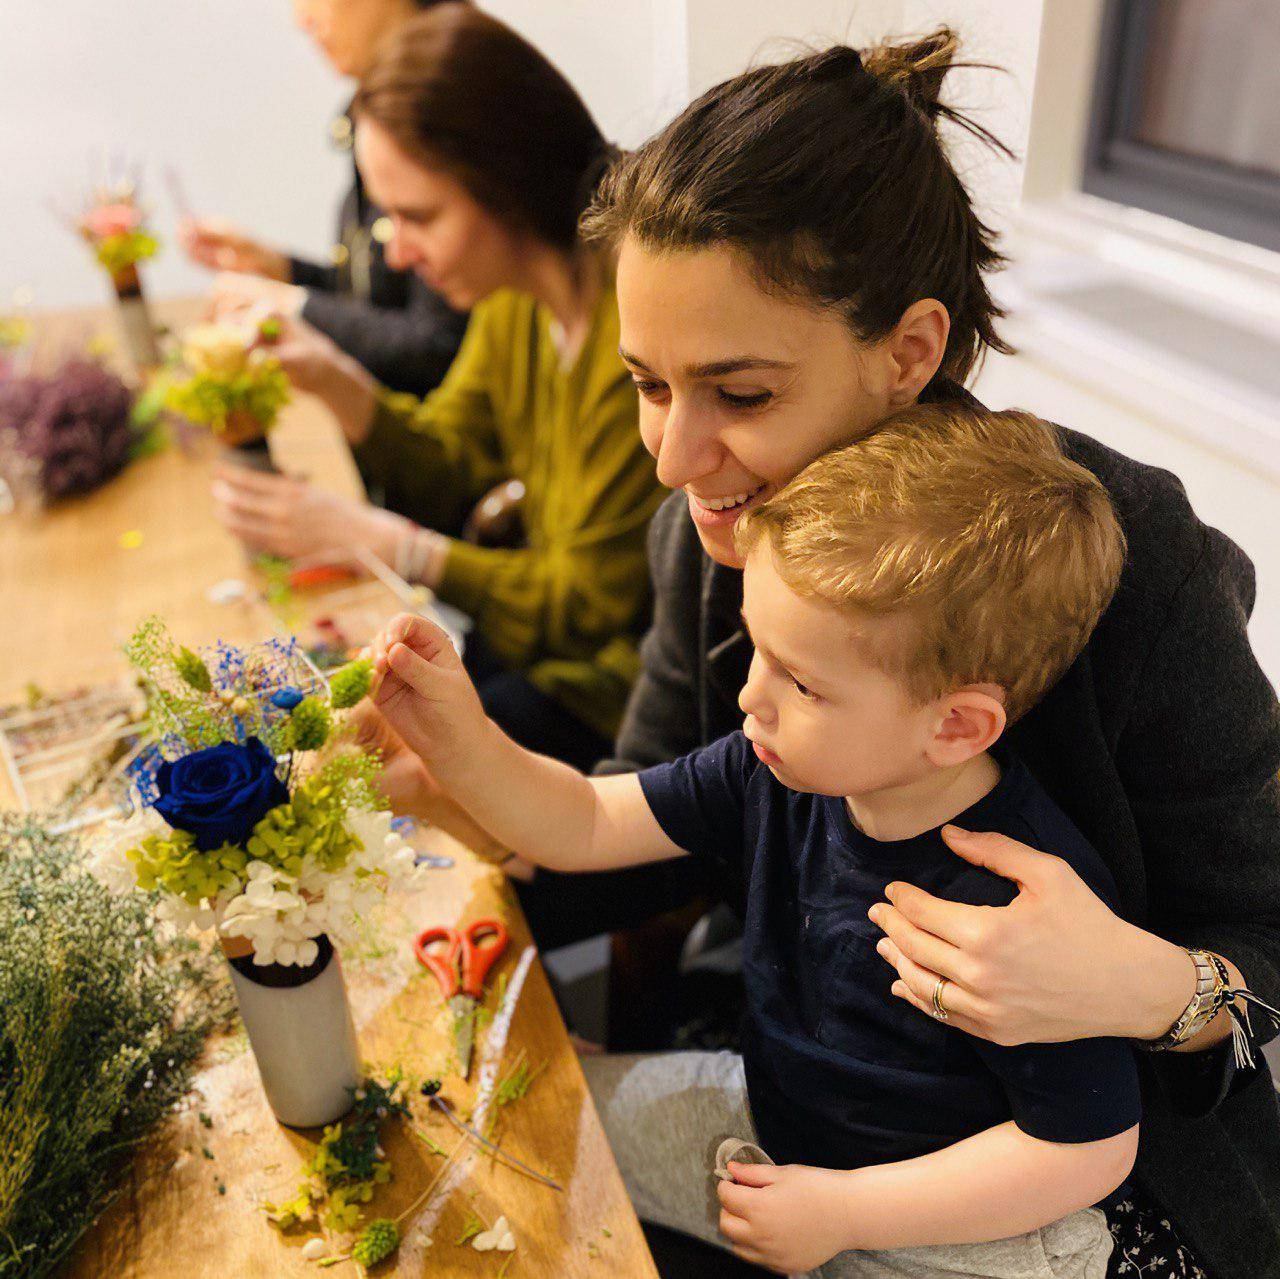 2021.3.25 Swing into Spring: Floral Arranging Workshop with NYU Bay Area